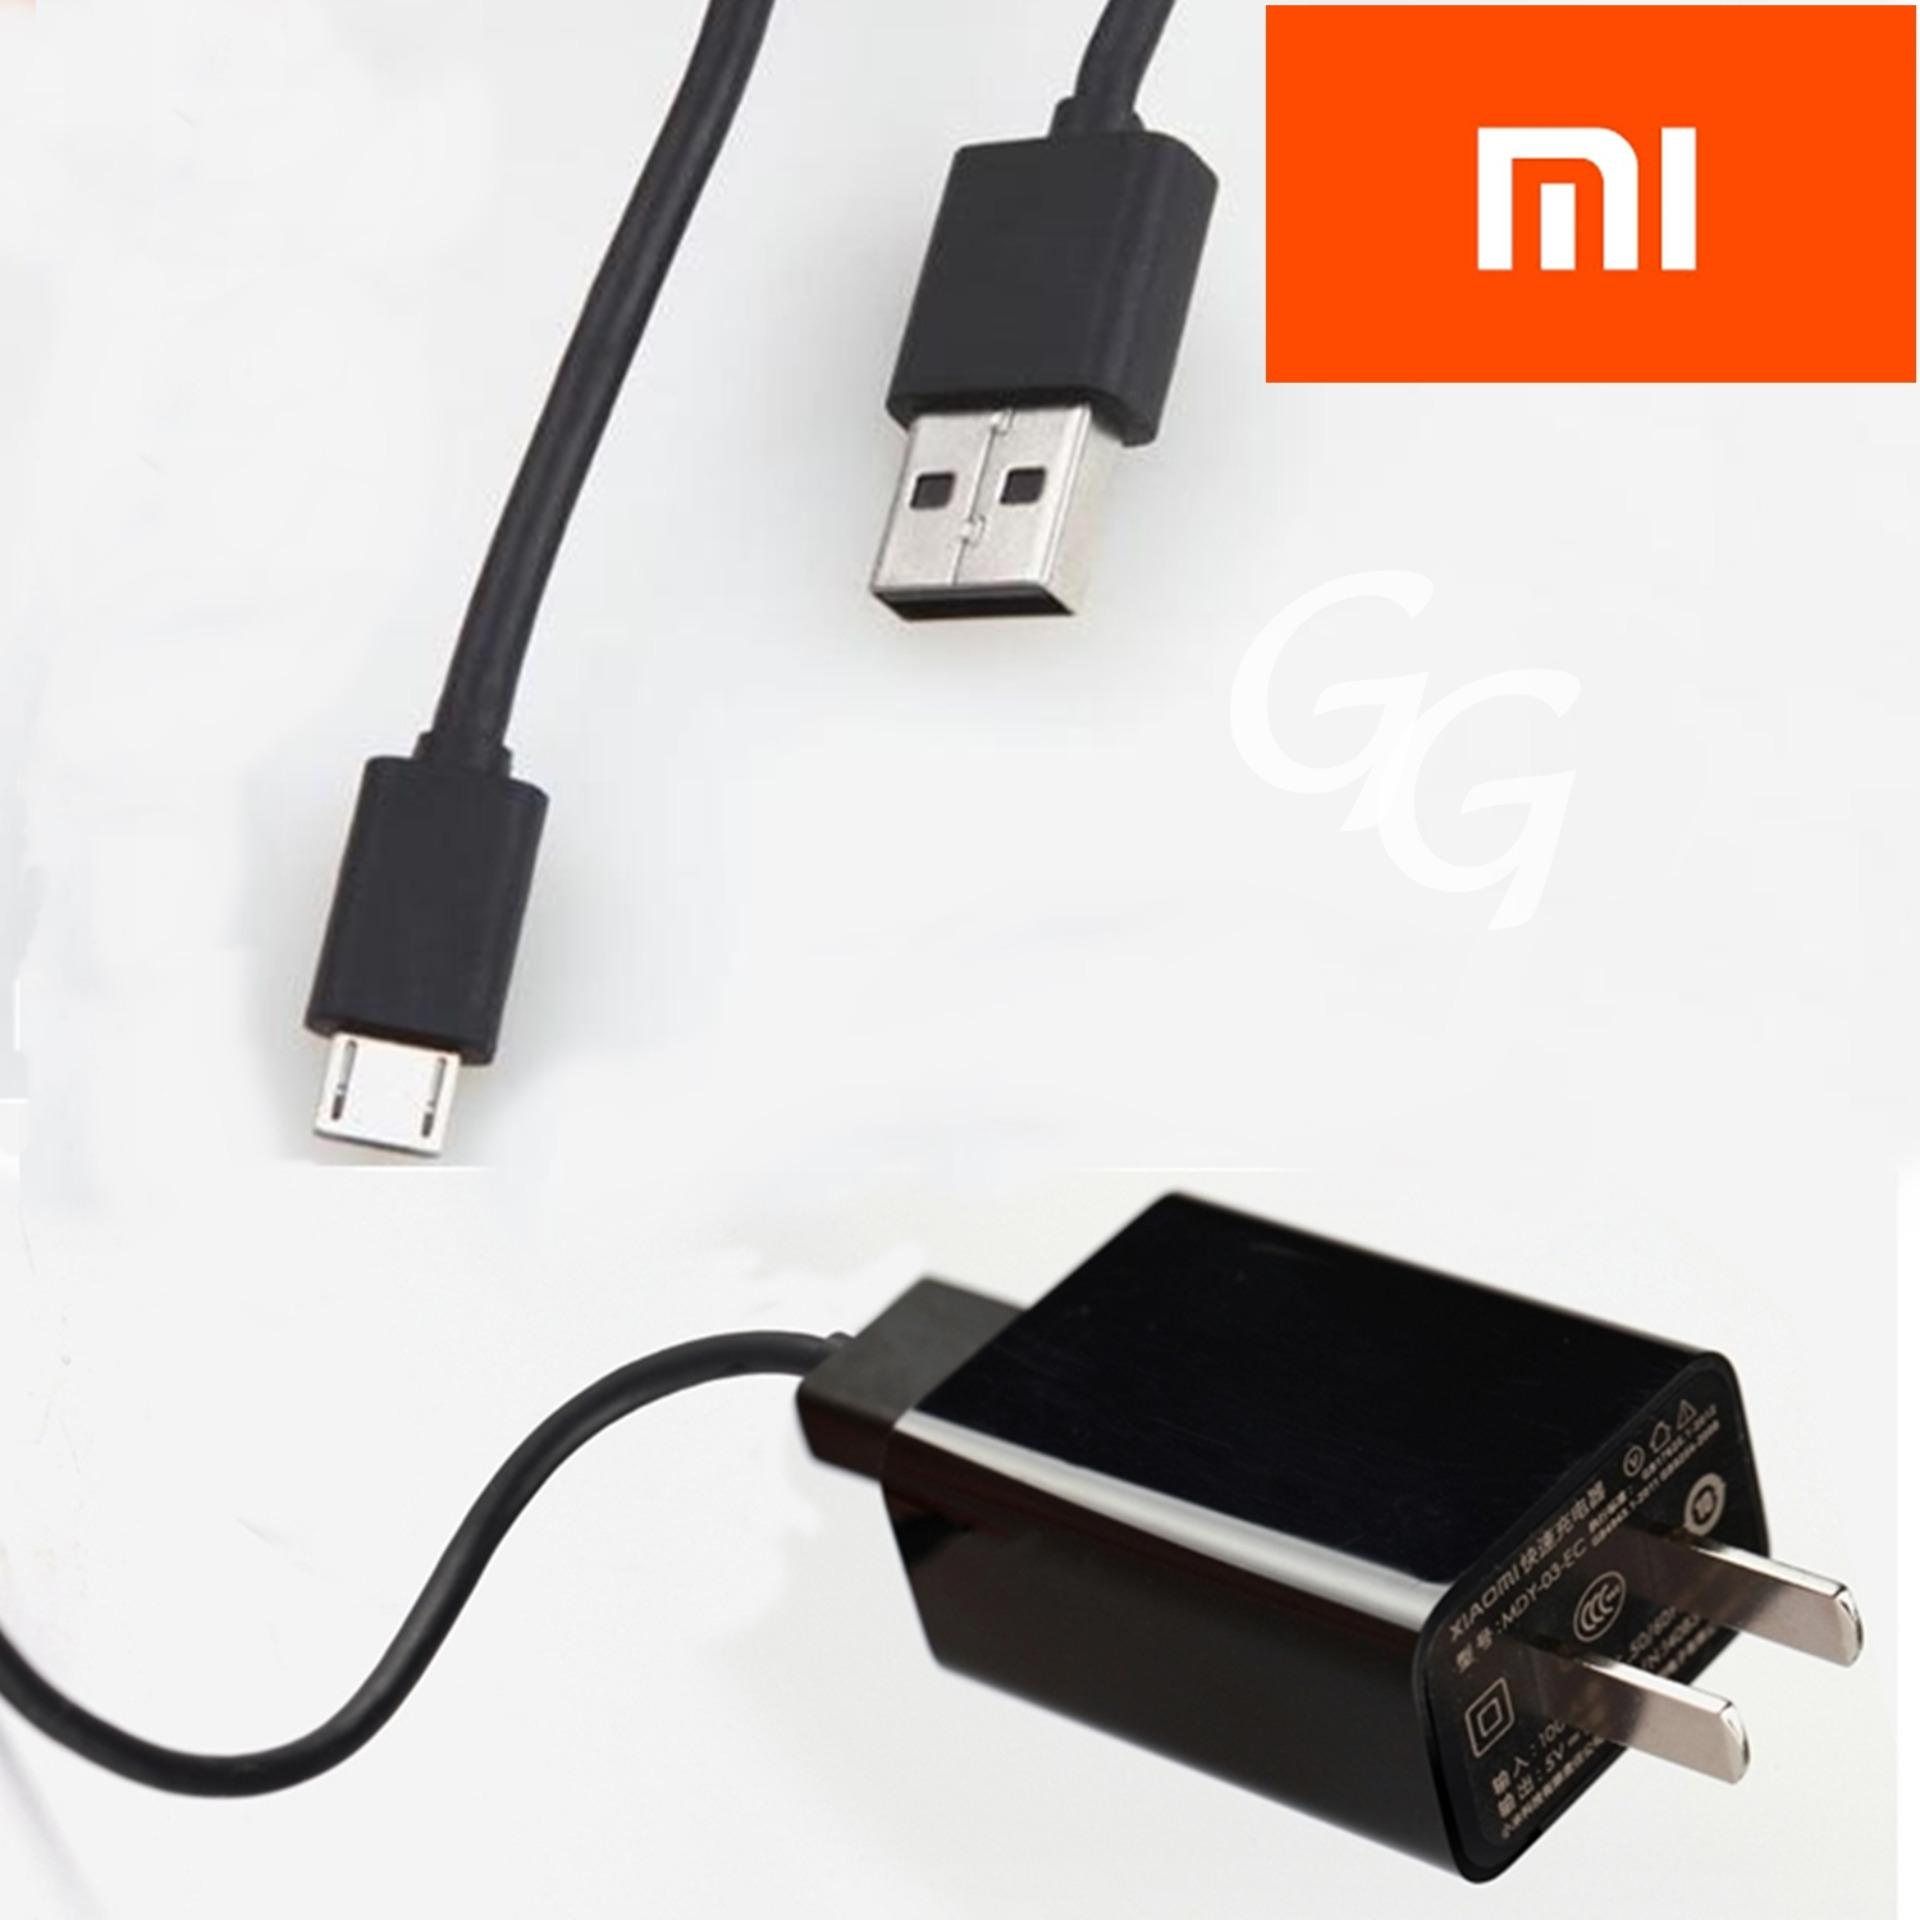 Xiaomi Charger Mdy 03 Eb 2a Fast Charging Hitam Daftar Harga Travel 2ampere Micro Usb Original Sync Data Black Source